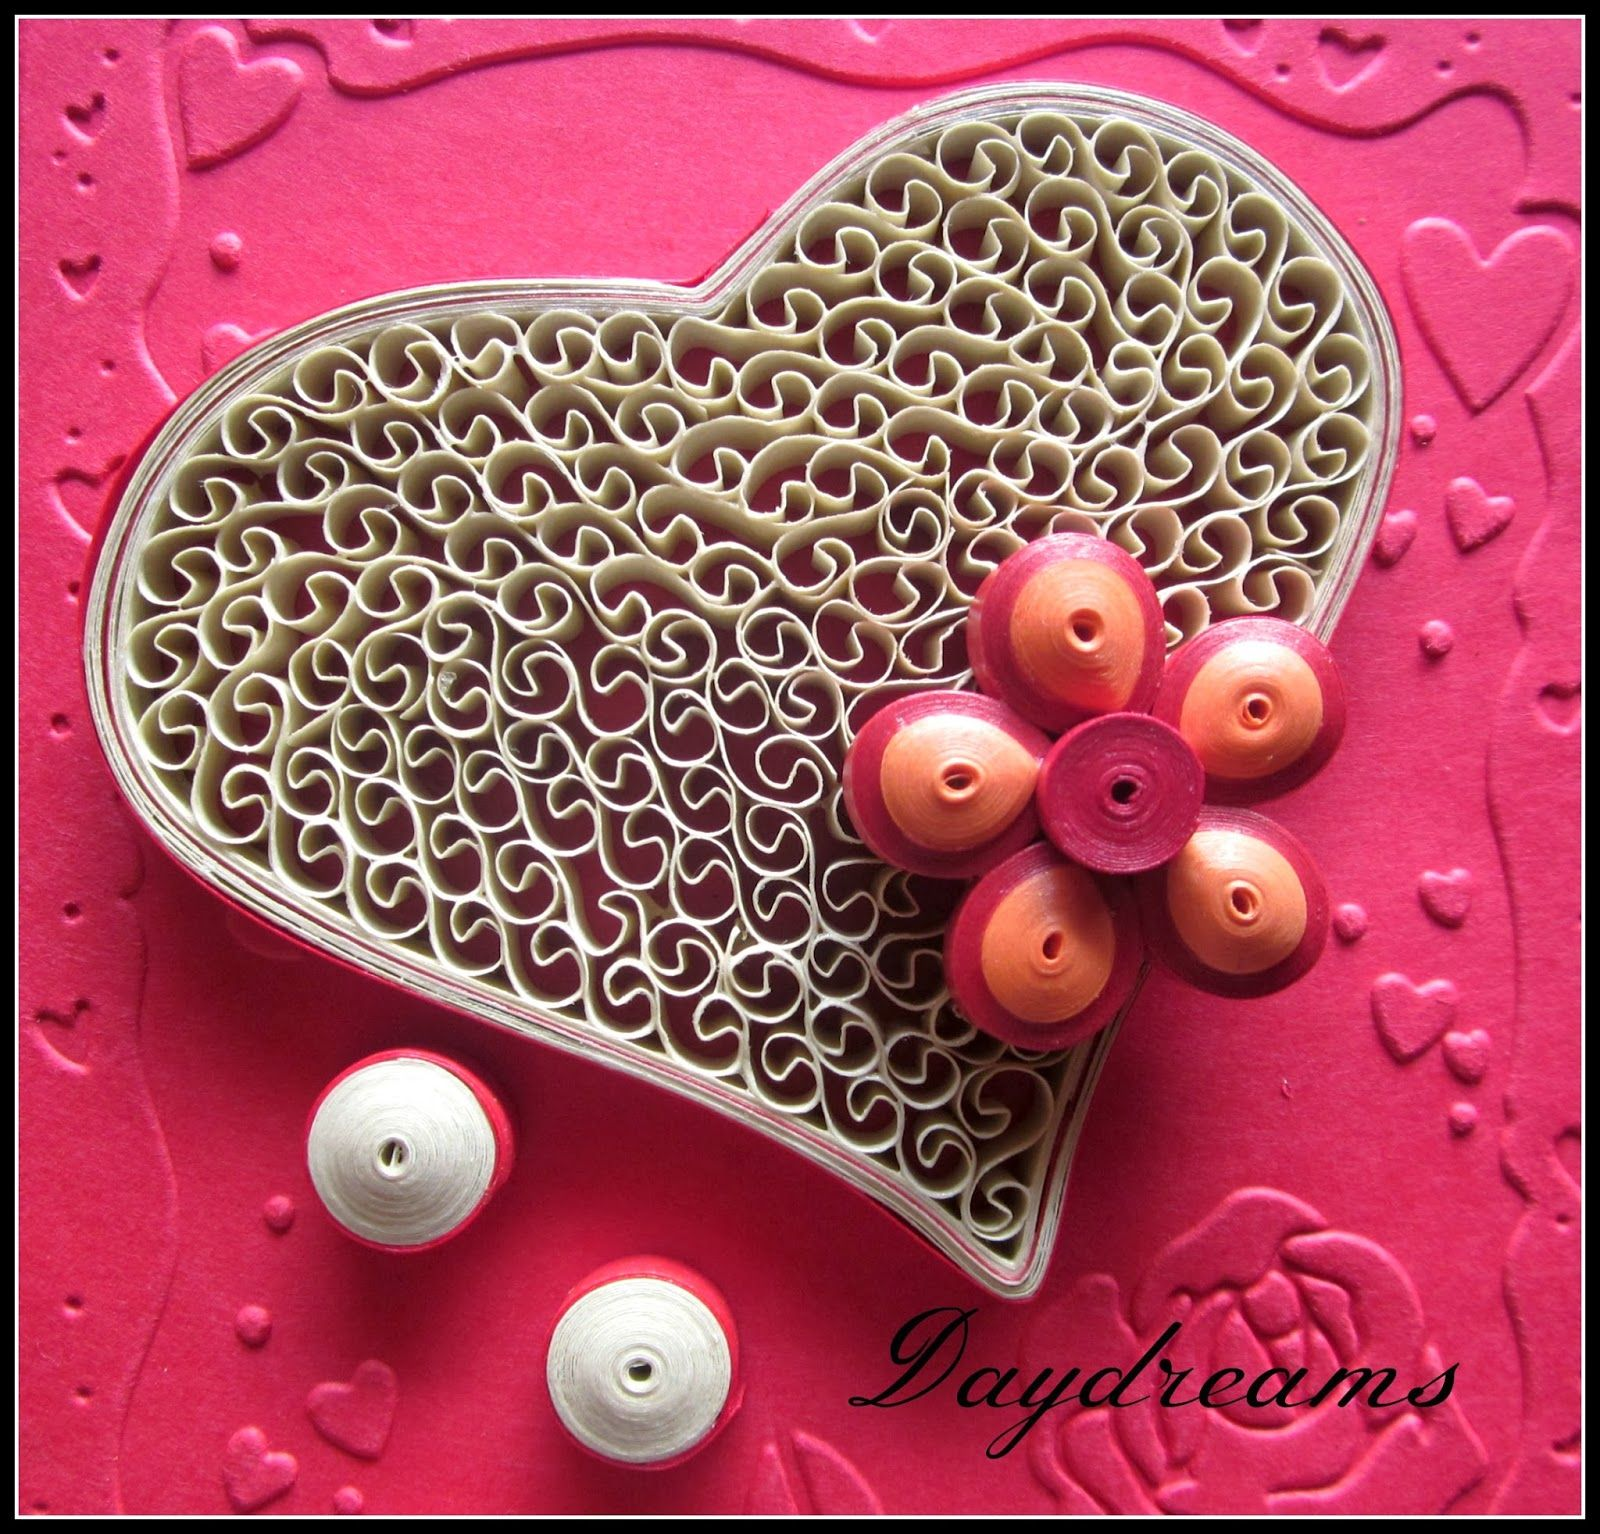 DAYDREAMS Quilled valentine  Quilling  Pinterest  Quilling